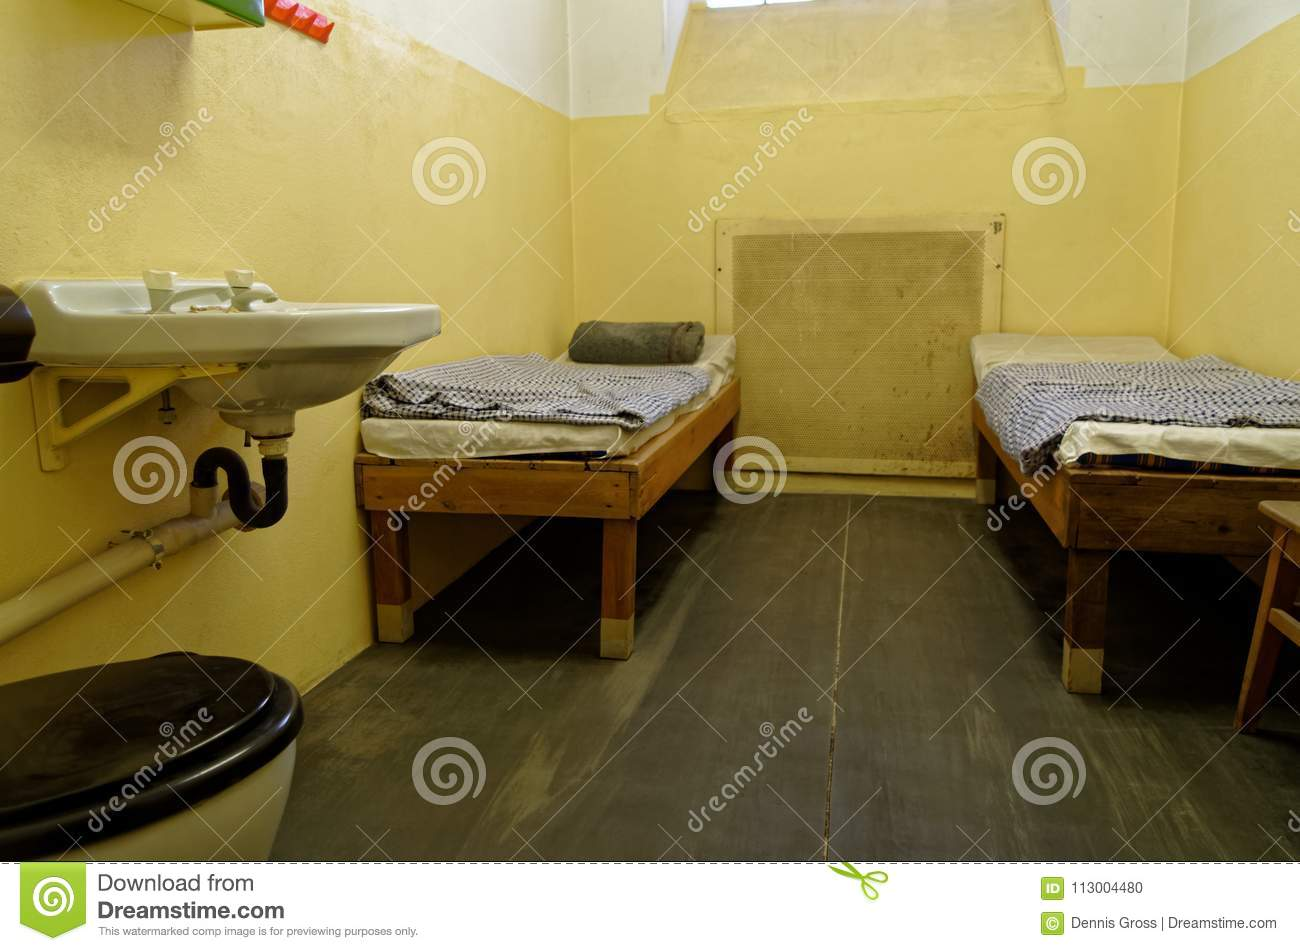 Jail Cell With Two Bunk Beds And Sink Are Exposed In The Stasi